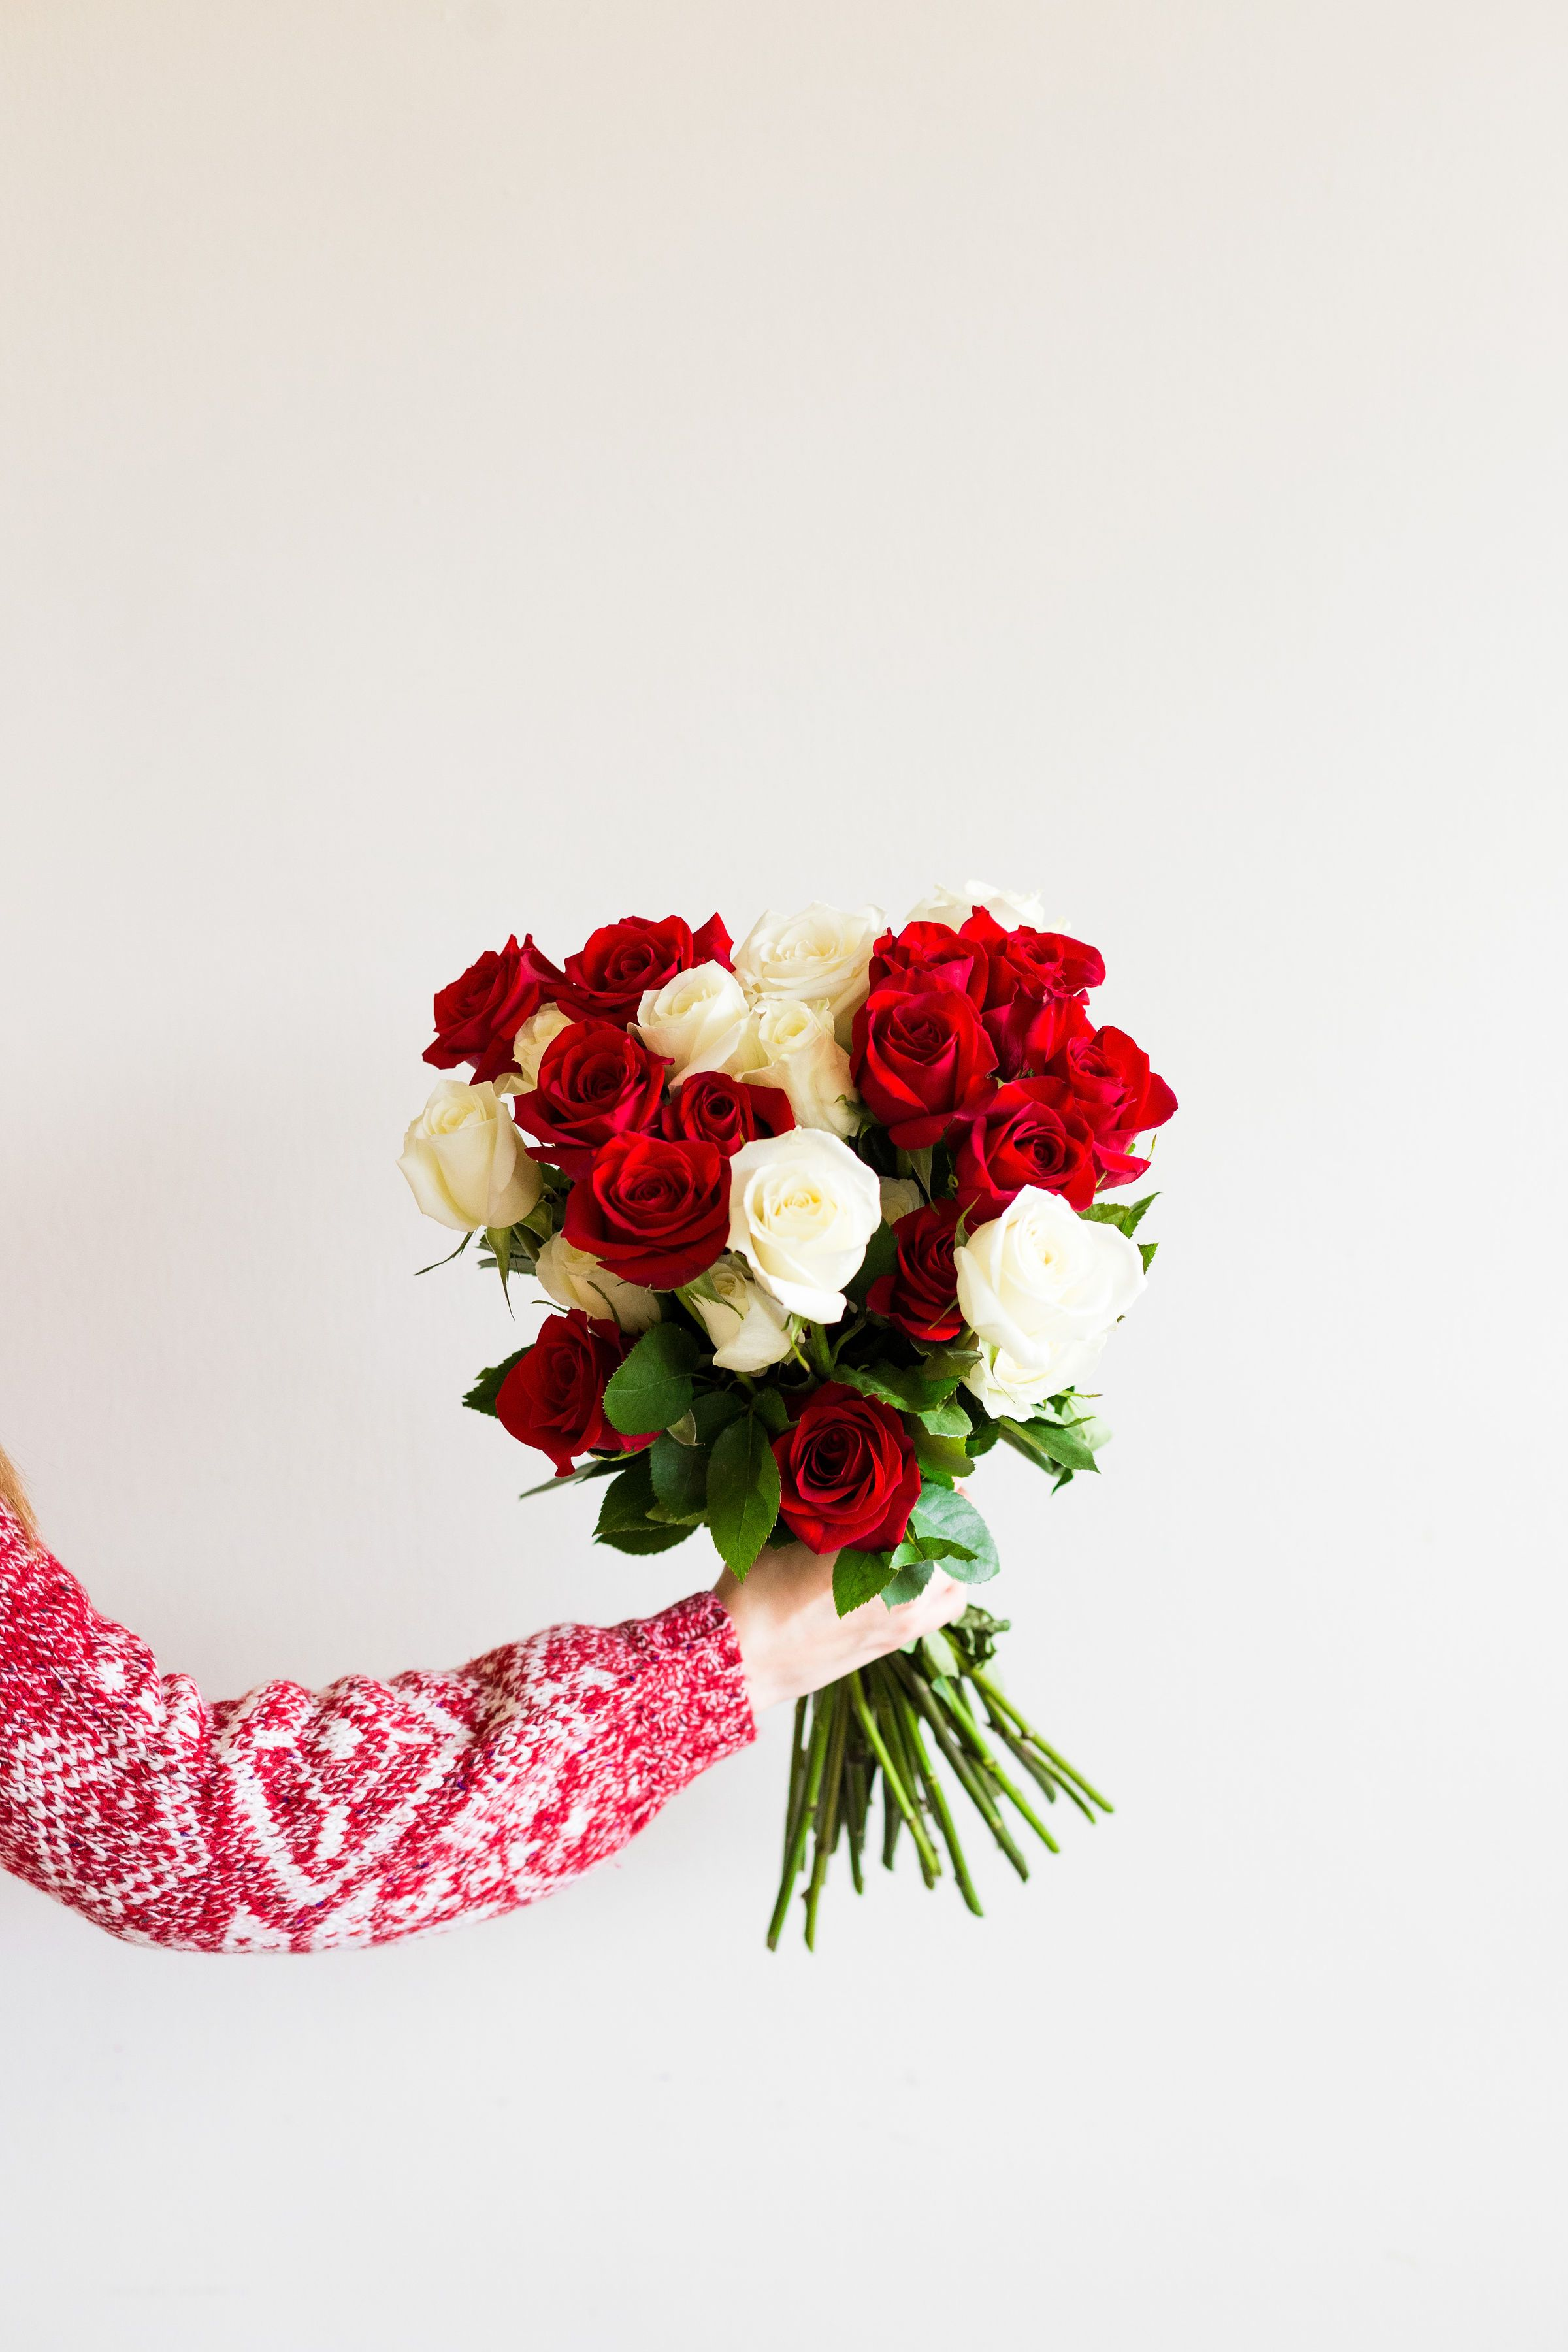 Christmas bouquets that include red and white roses with